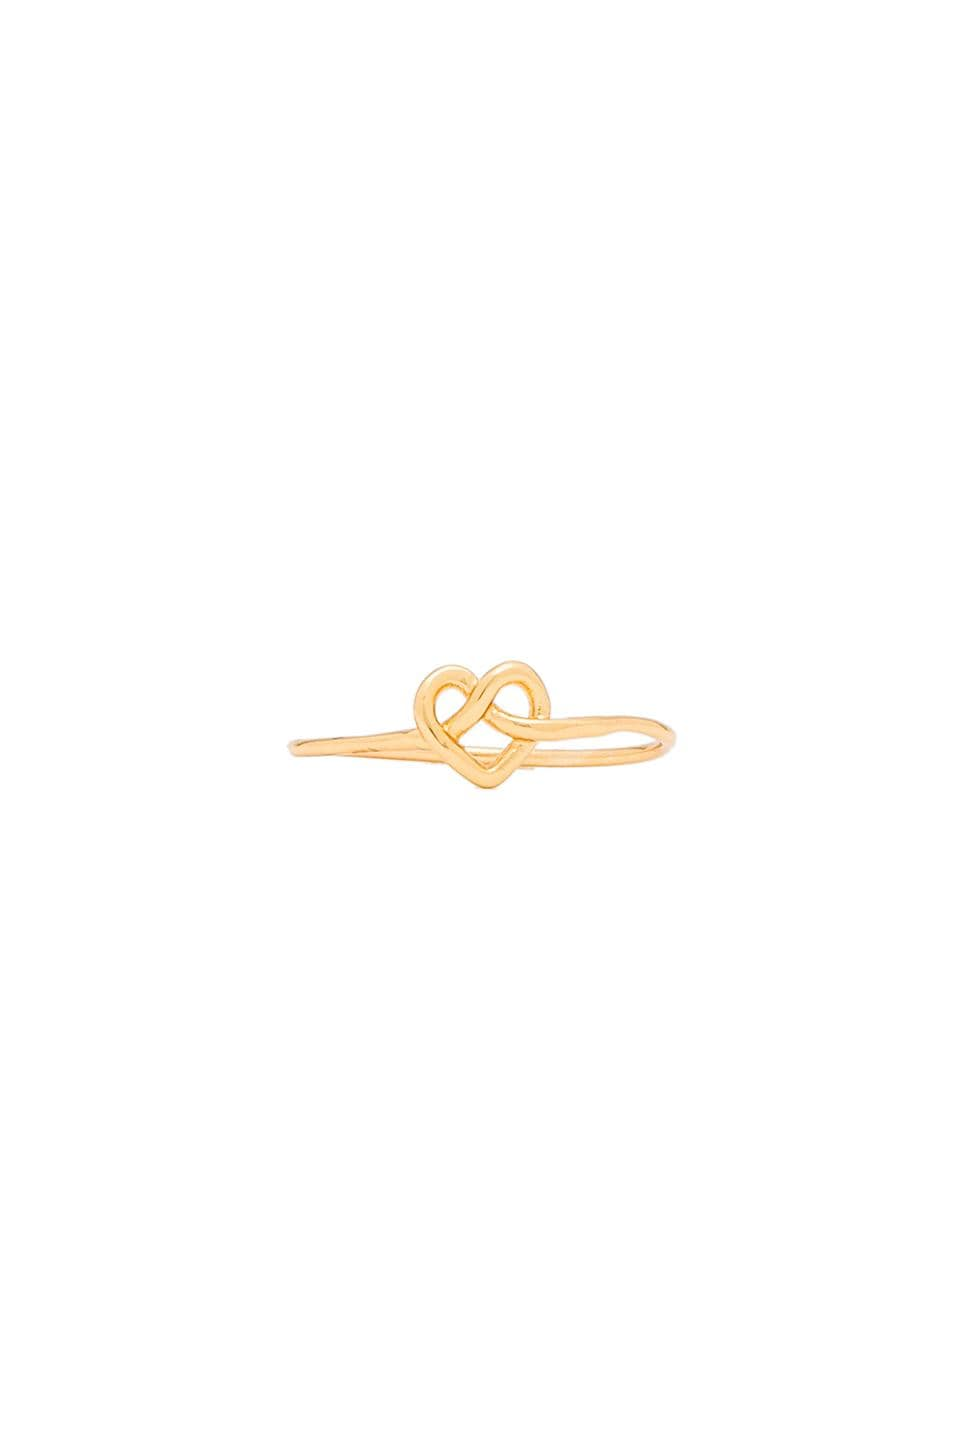 gorjana Cross My Heart Ring in Gold